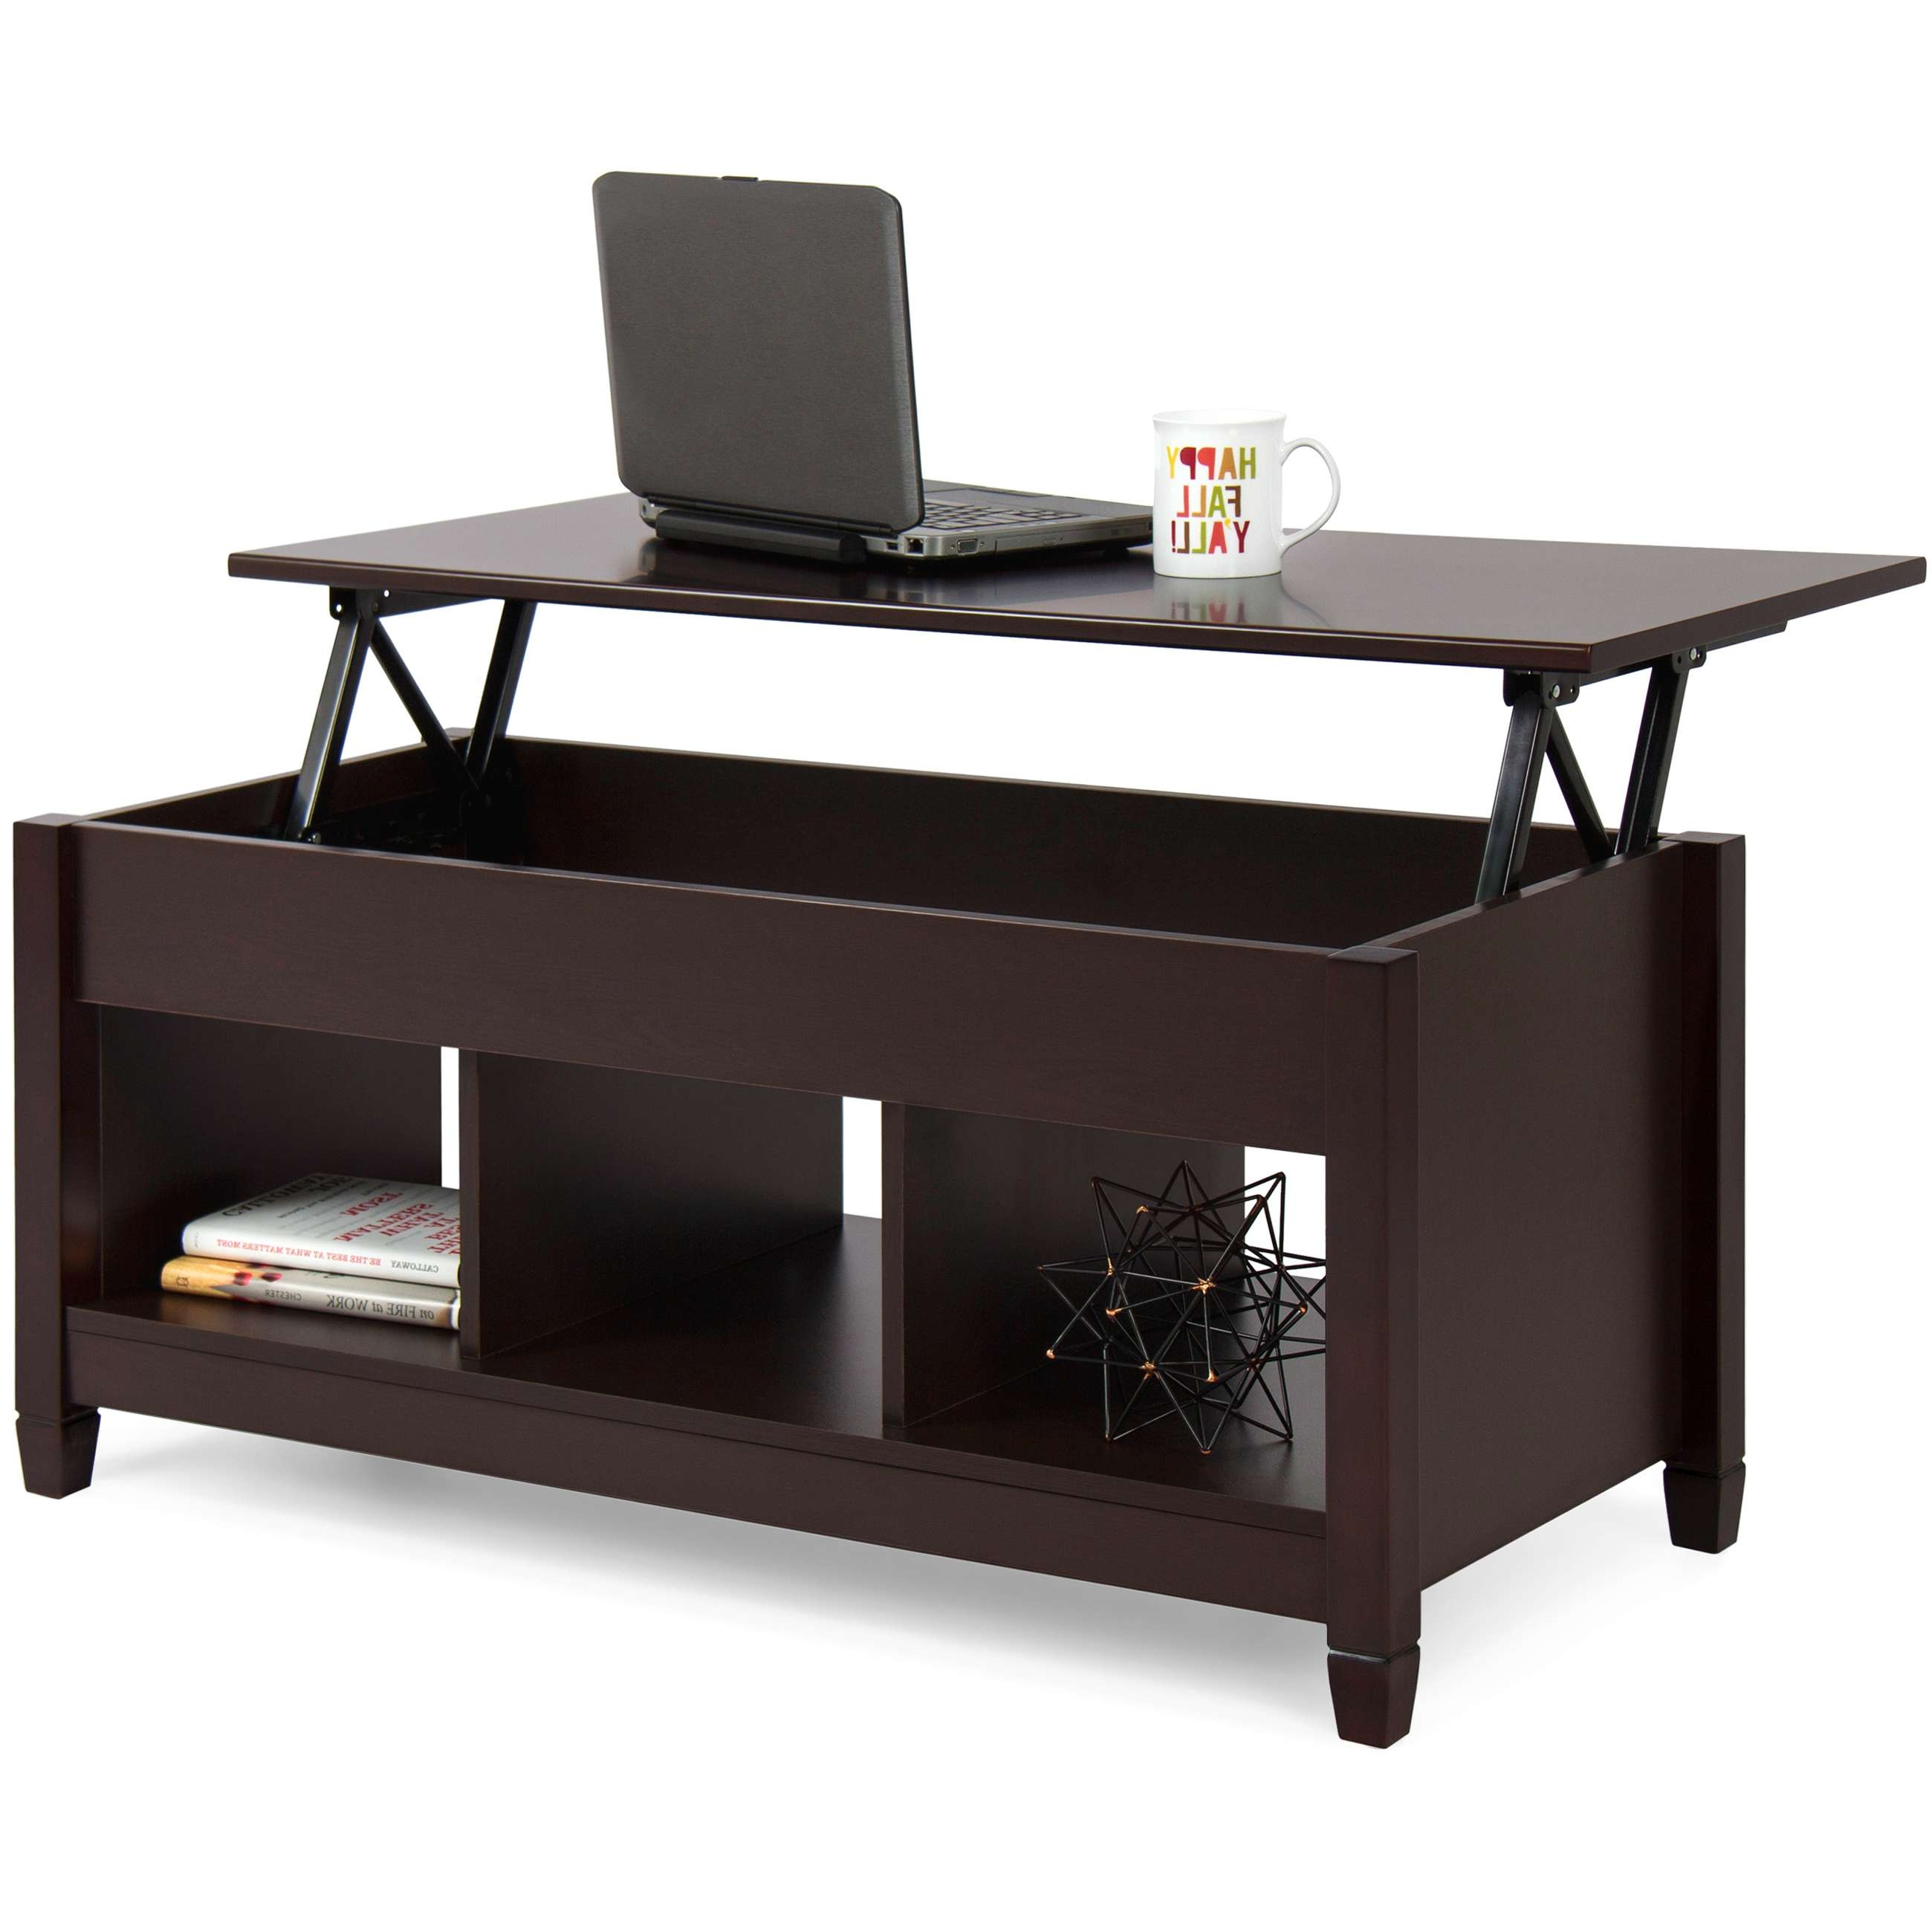 Famous Cd Storage Coffee Tables Pertaining To Best Choice Products Home Lift Top Coffee Table Modern Furniture W (View 9 of 20)